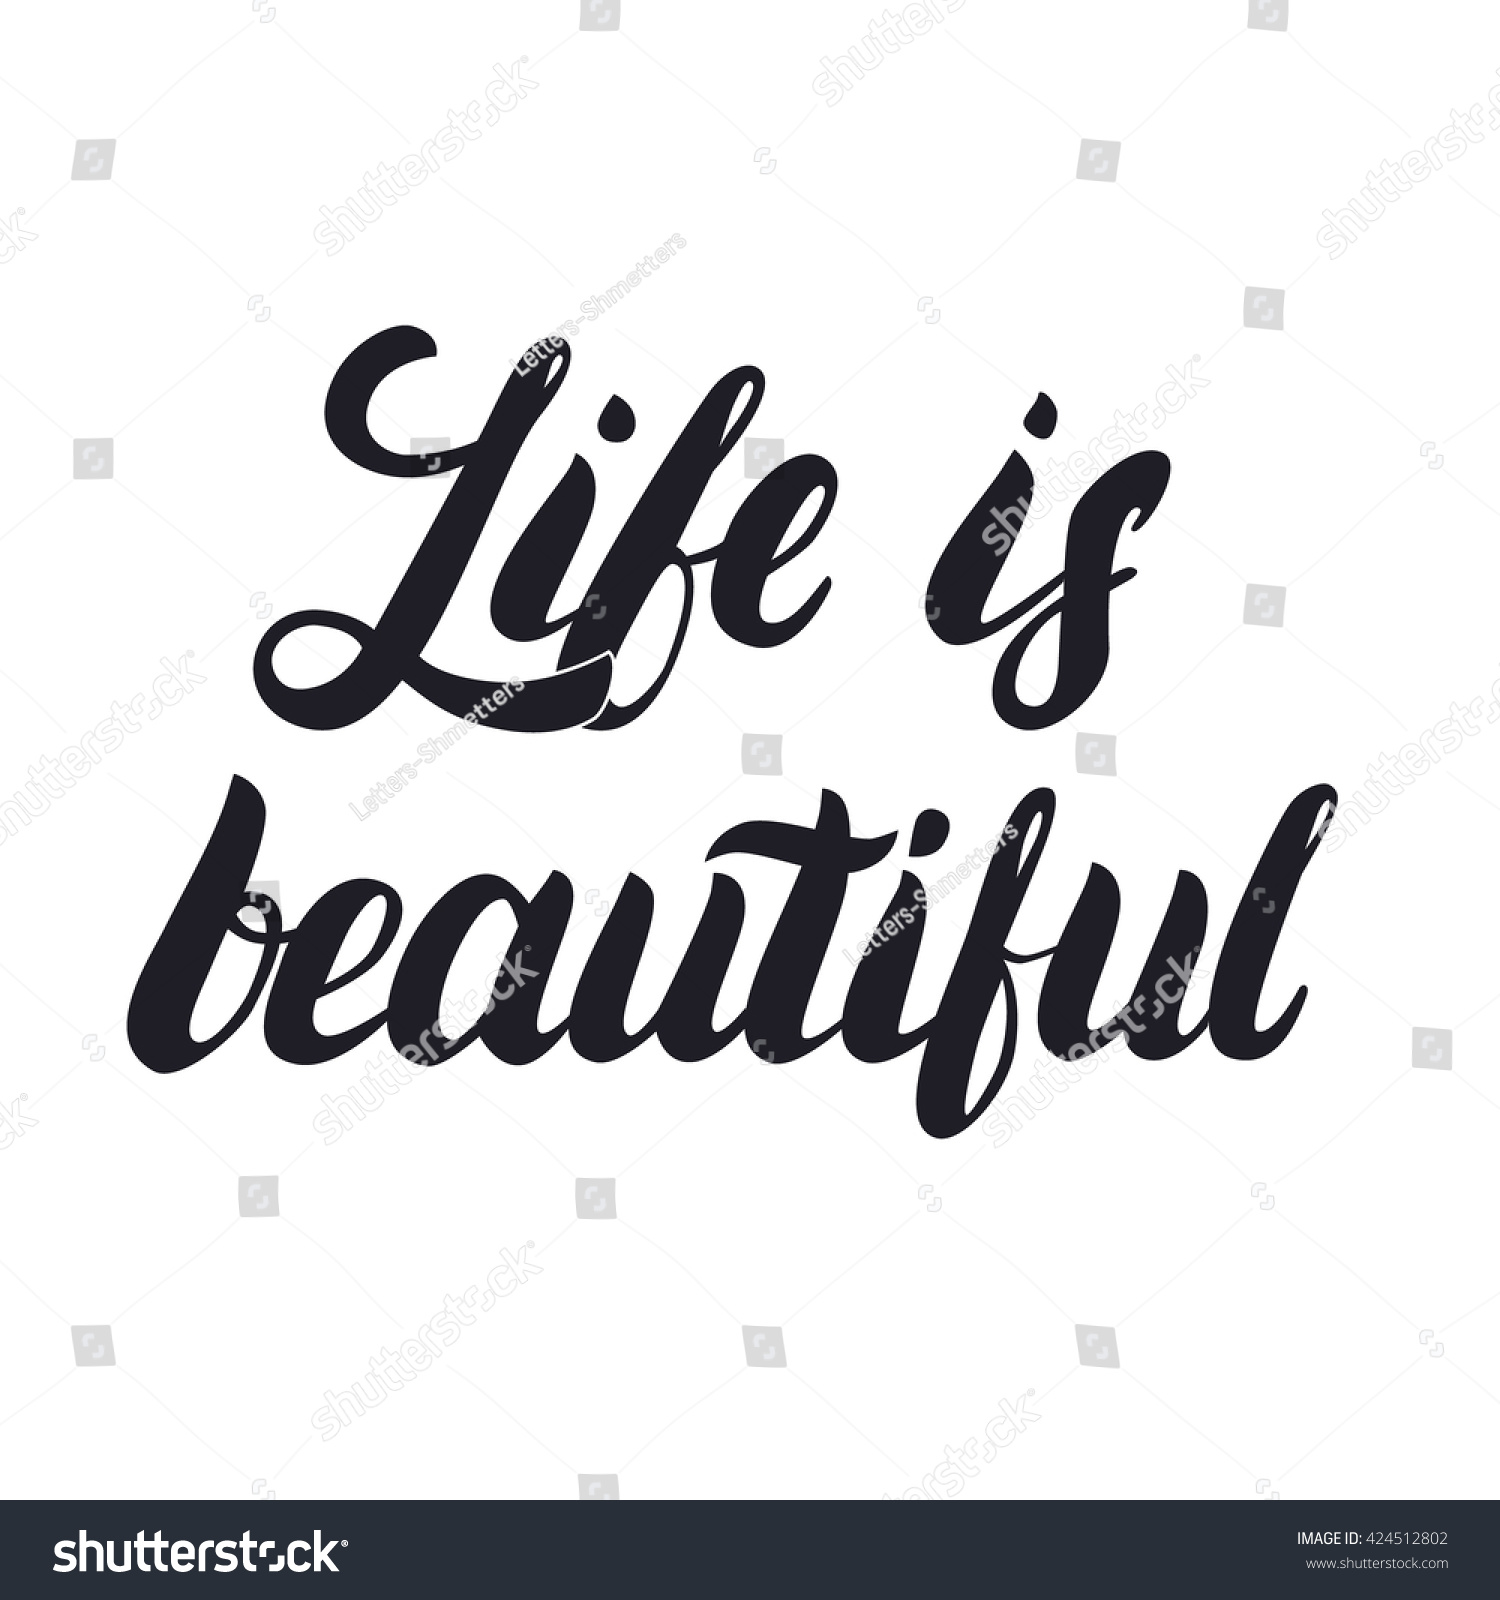 Life Is Beautiful Hand Lettering Calligraphy Phrase For Greetings